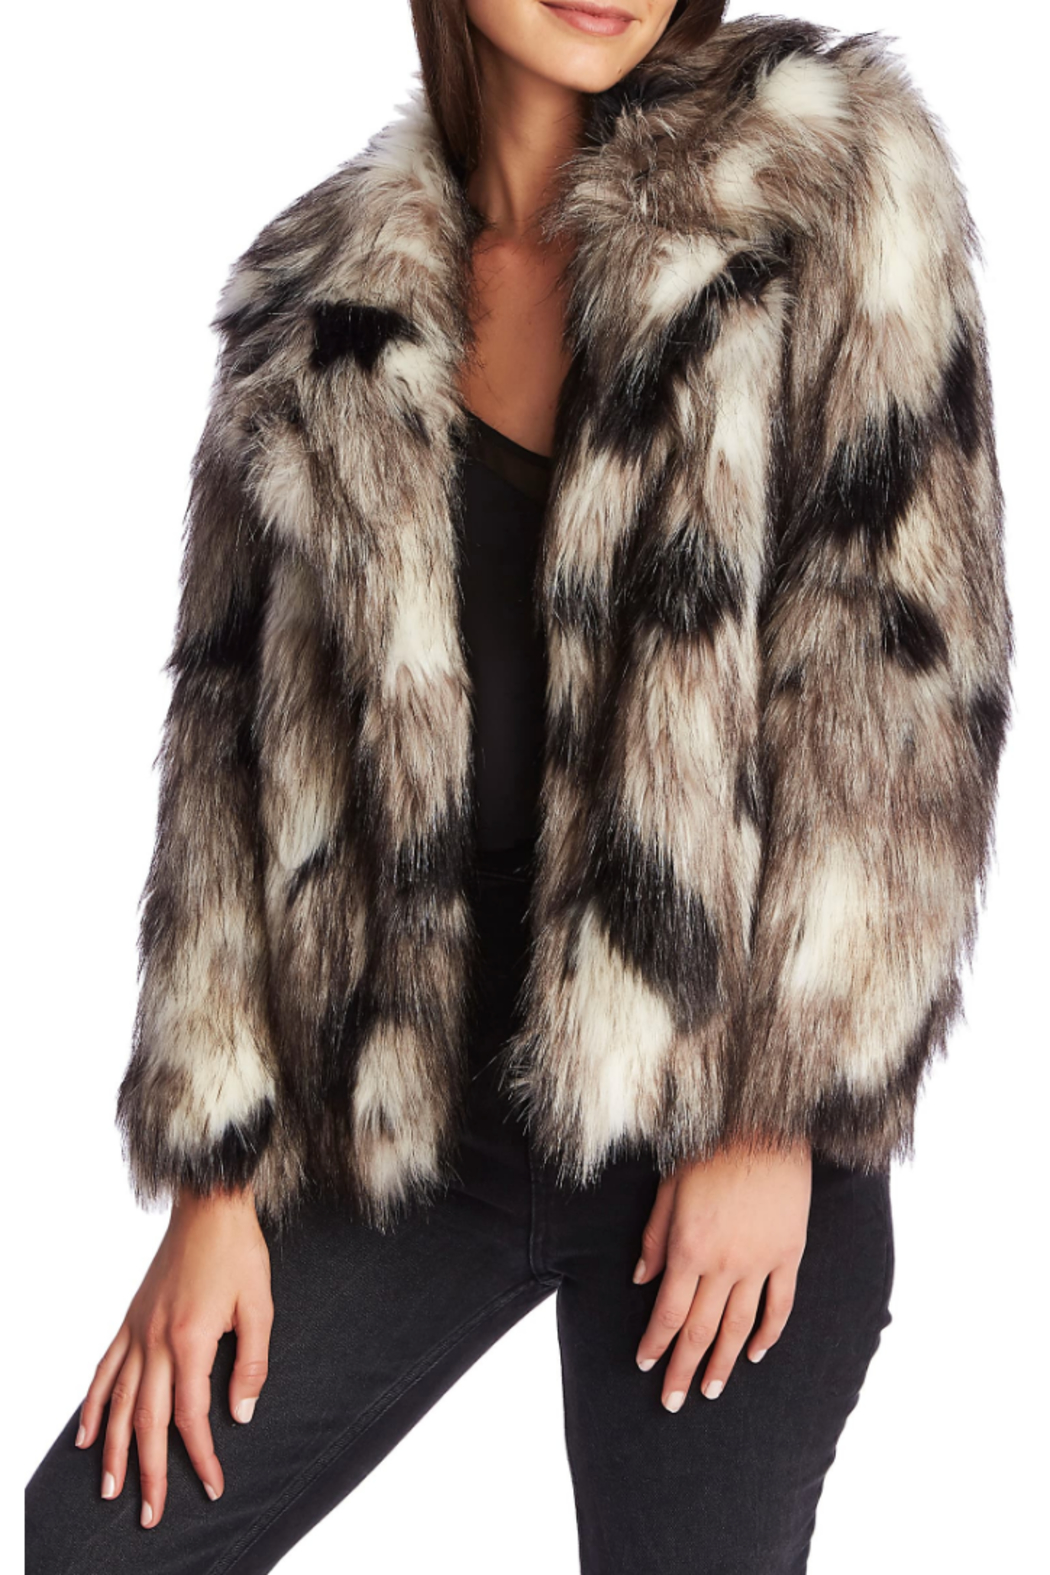 1. State Cropped coyote fur jacket - Main Image